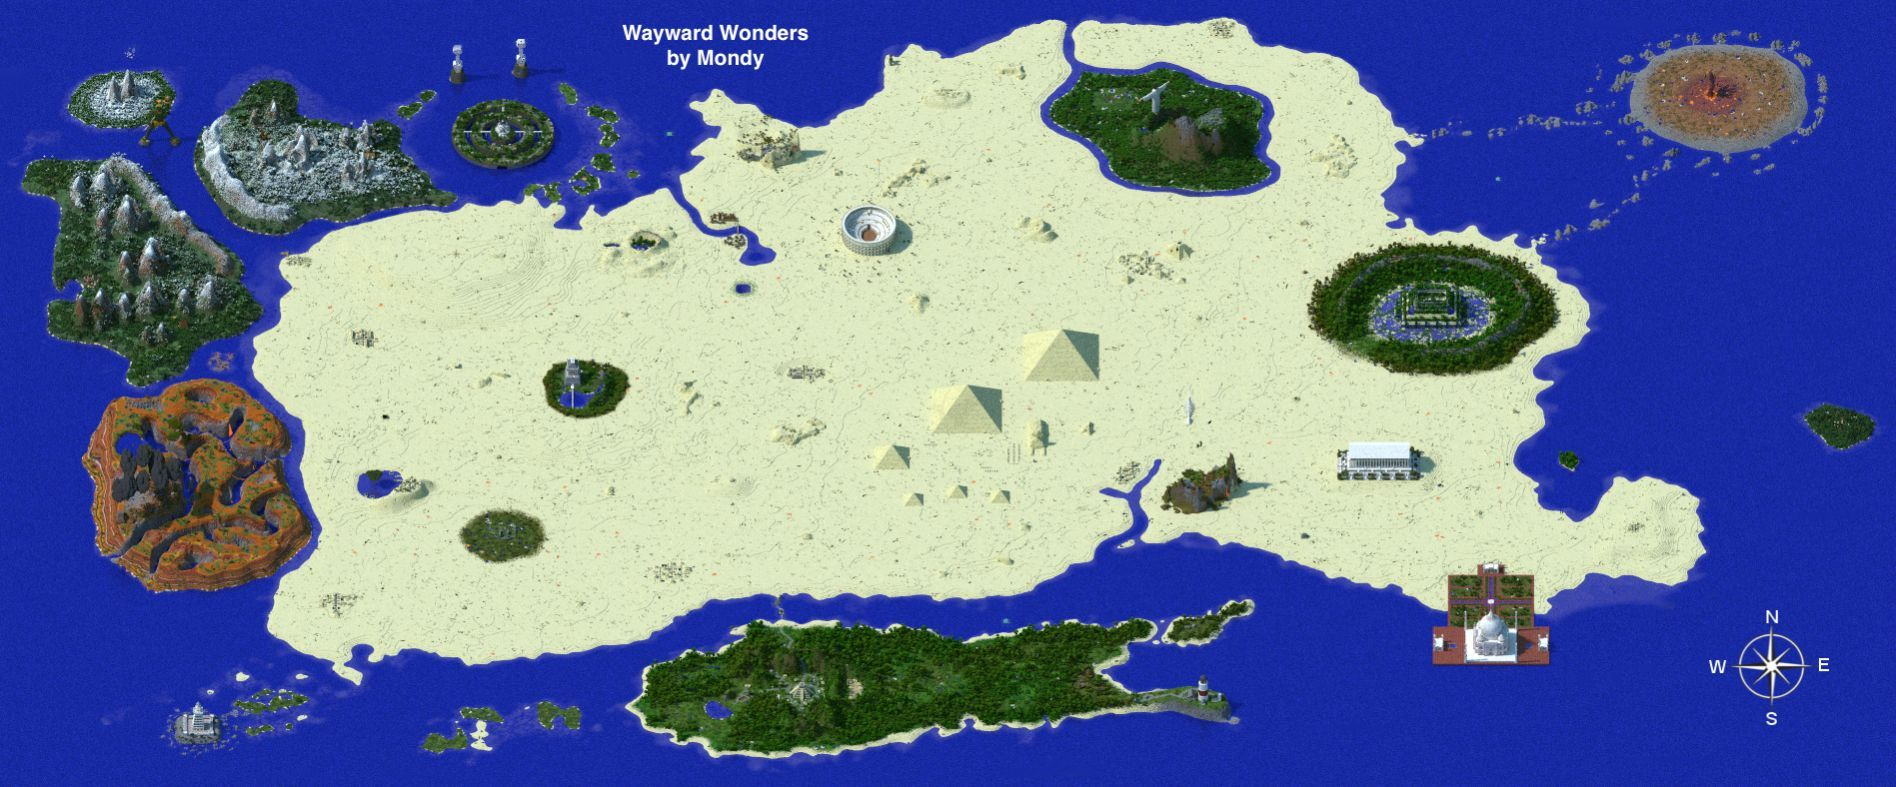 Wayward wonders 183 open world fight bosses in the wonders wayward wonders open world fight bosses in the wonders of the world also available on minecraft realms maps mapping and modding java edition gumiabroncs Image collections